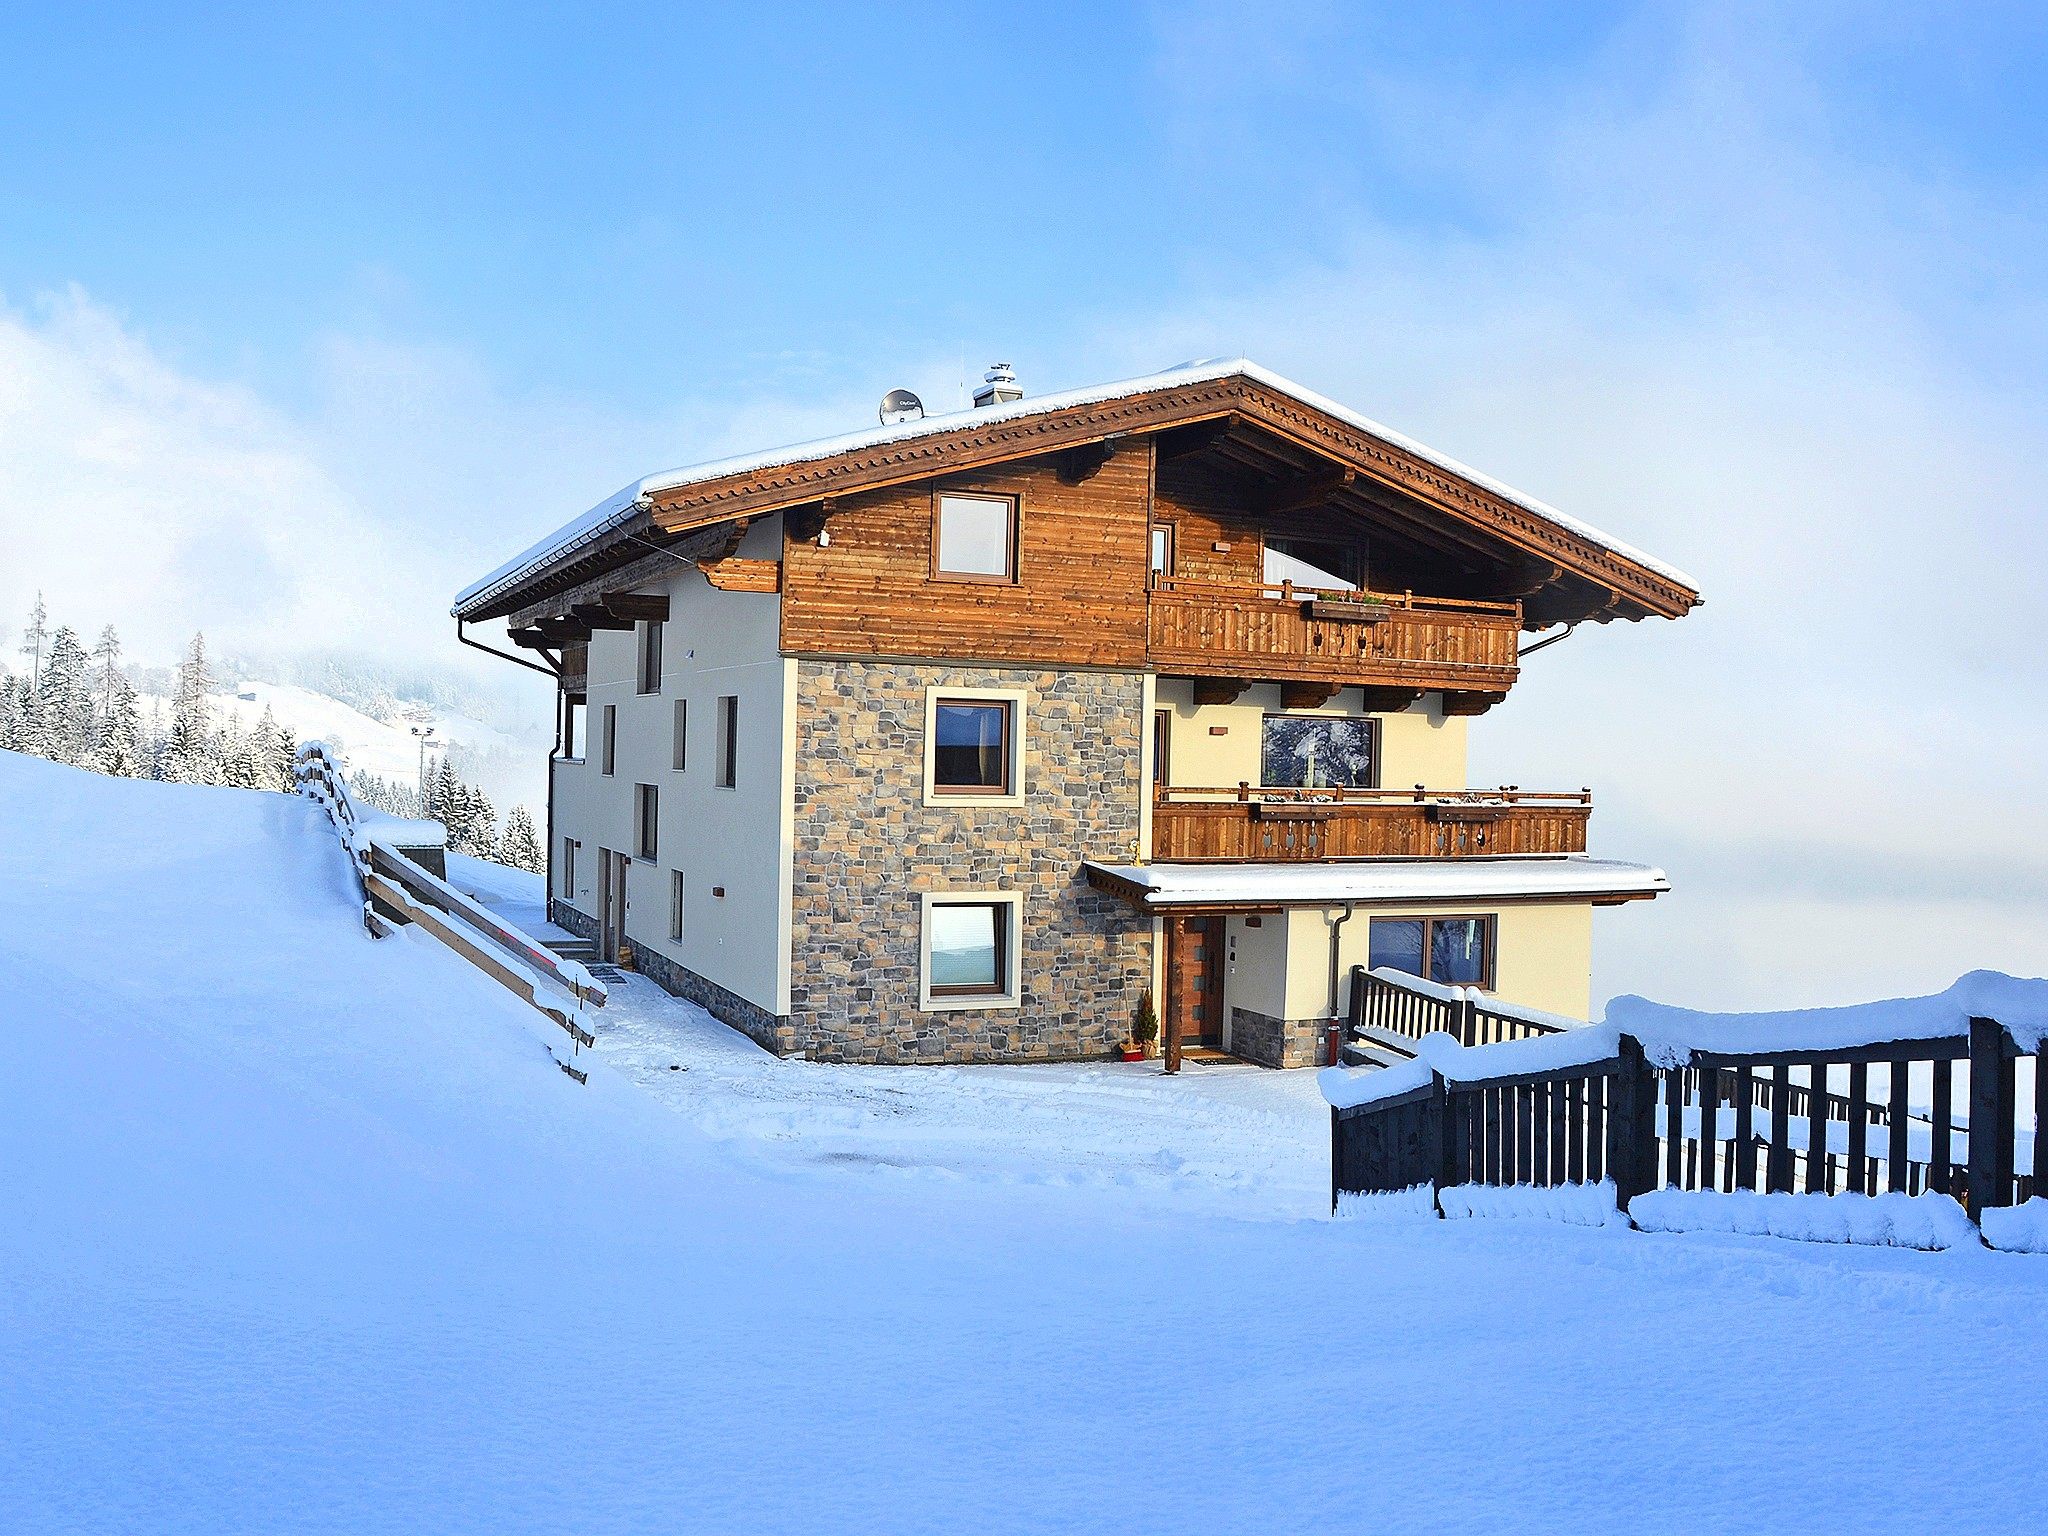 Spa Lodge Zillertal 2